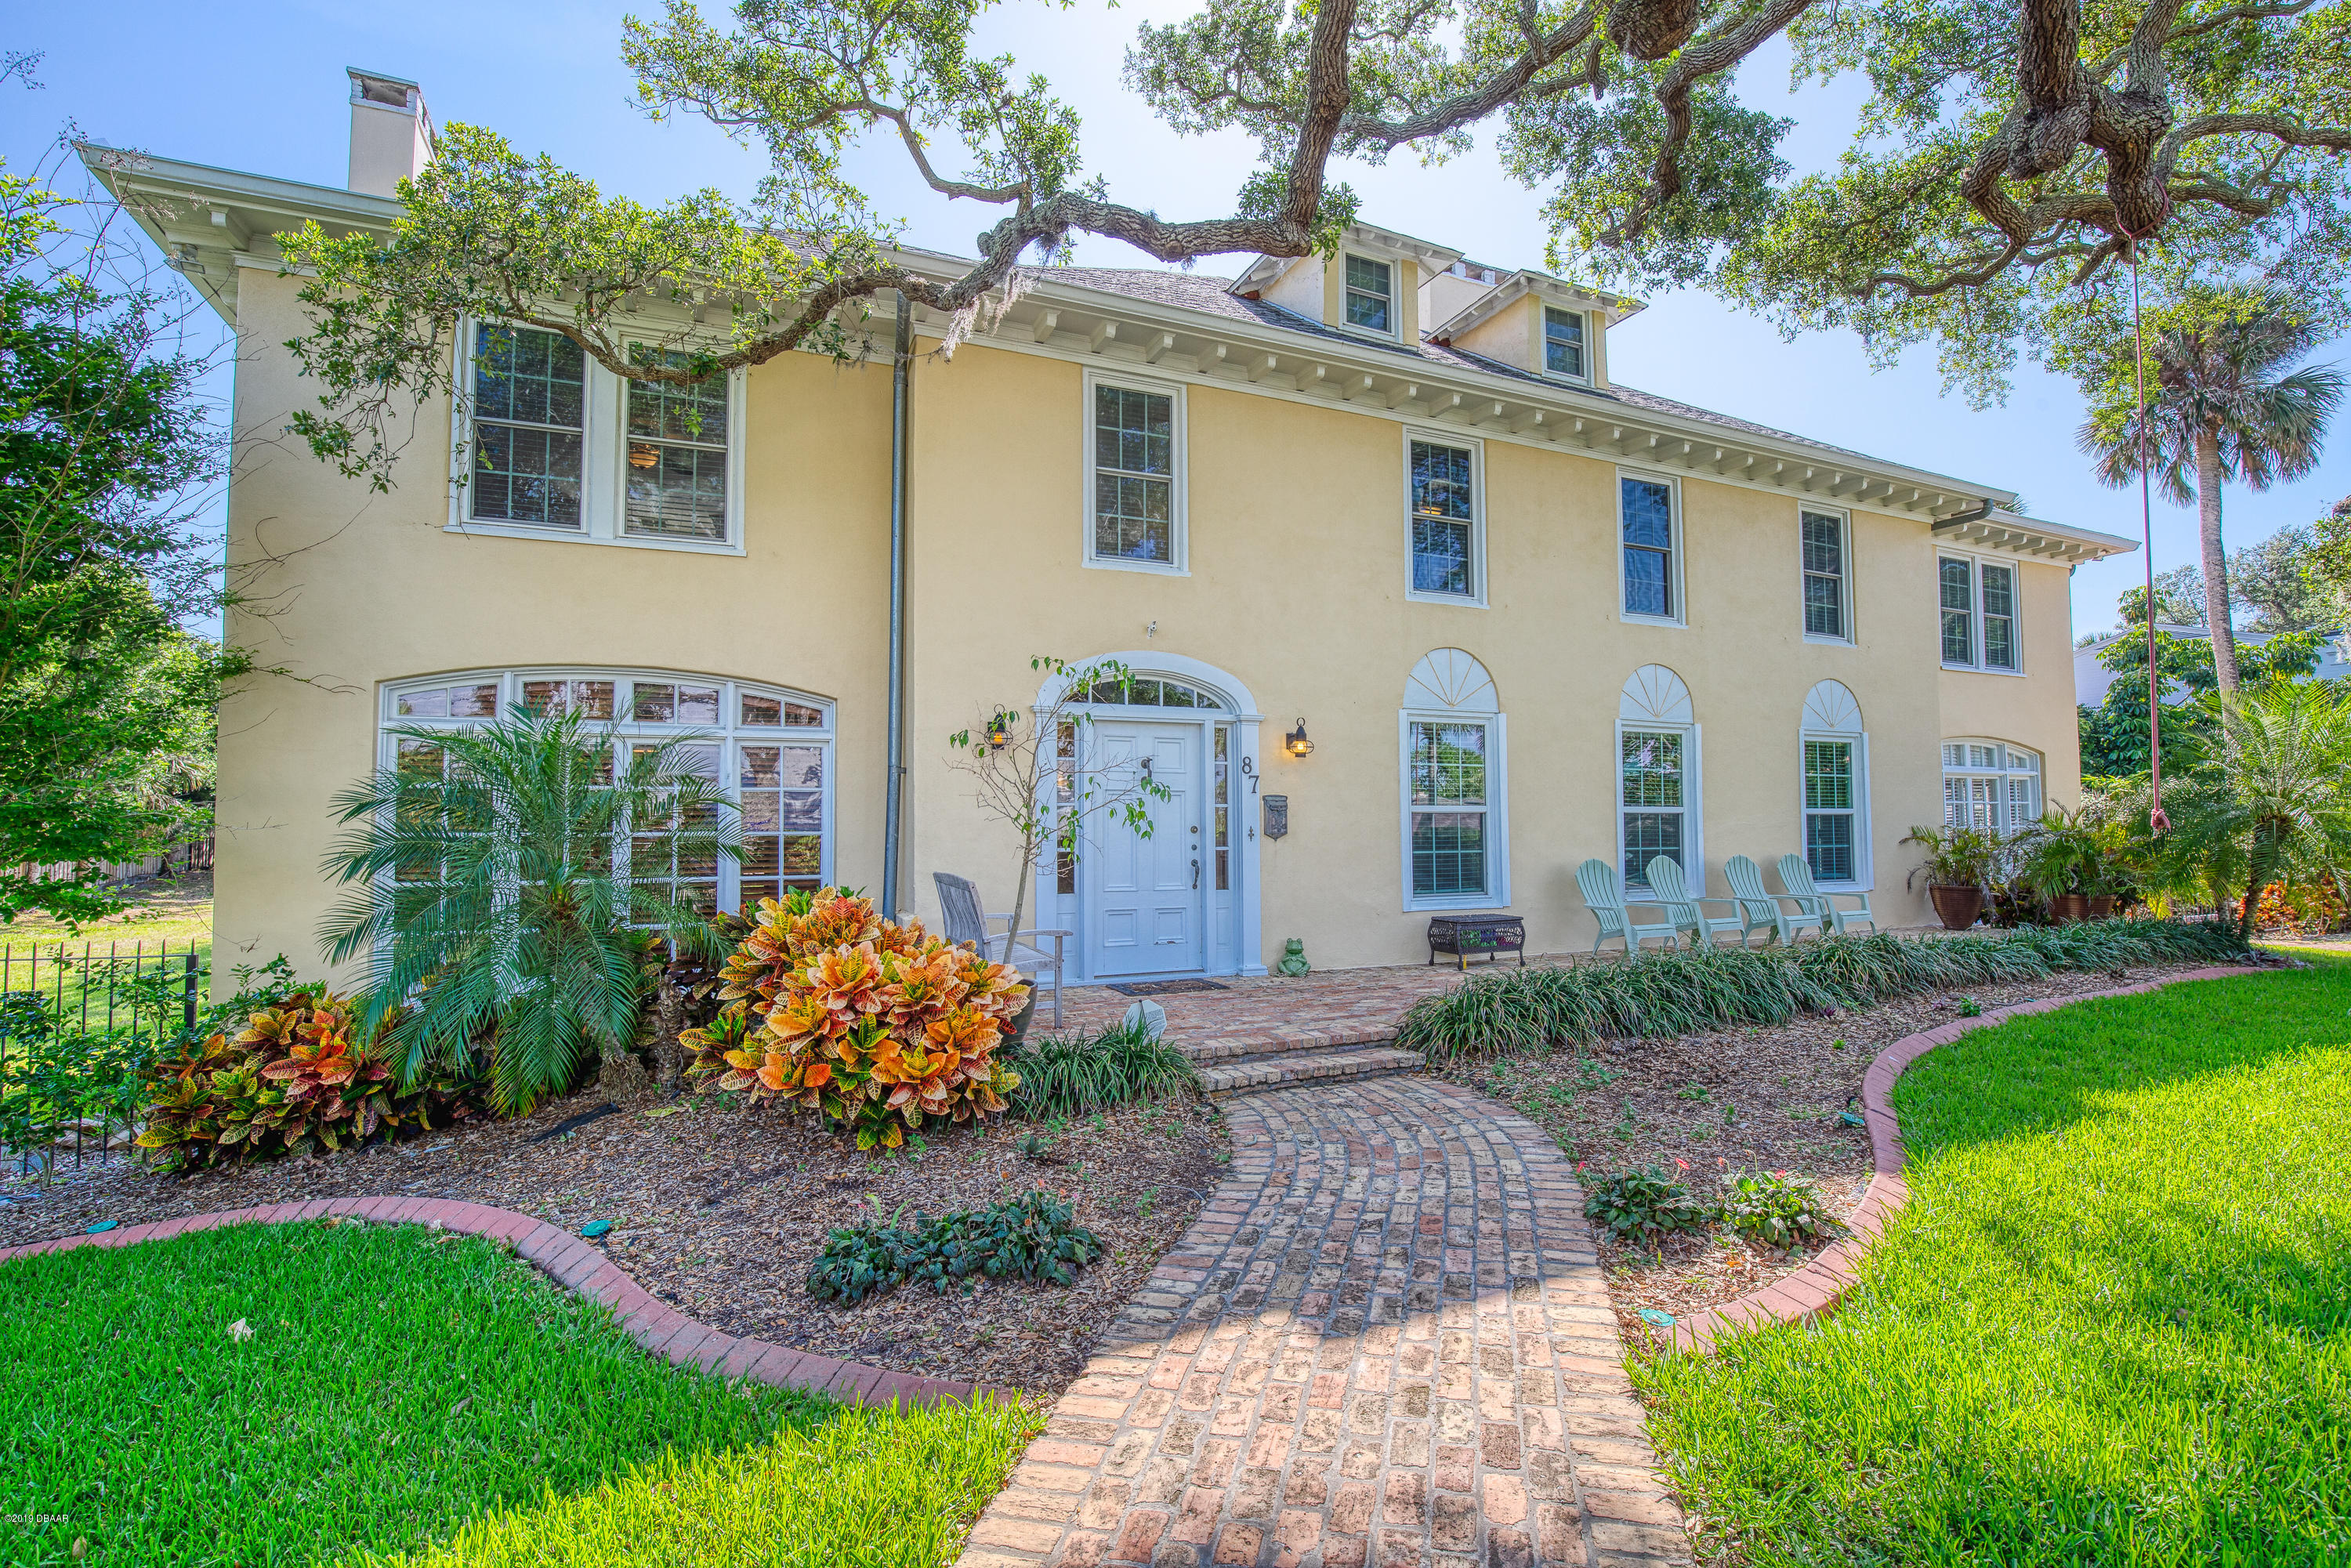 Photo of 87 Riverside Drive, Ormond Beach, FL 32176